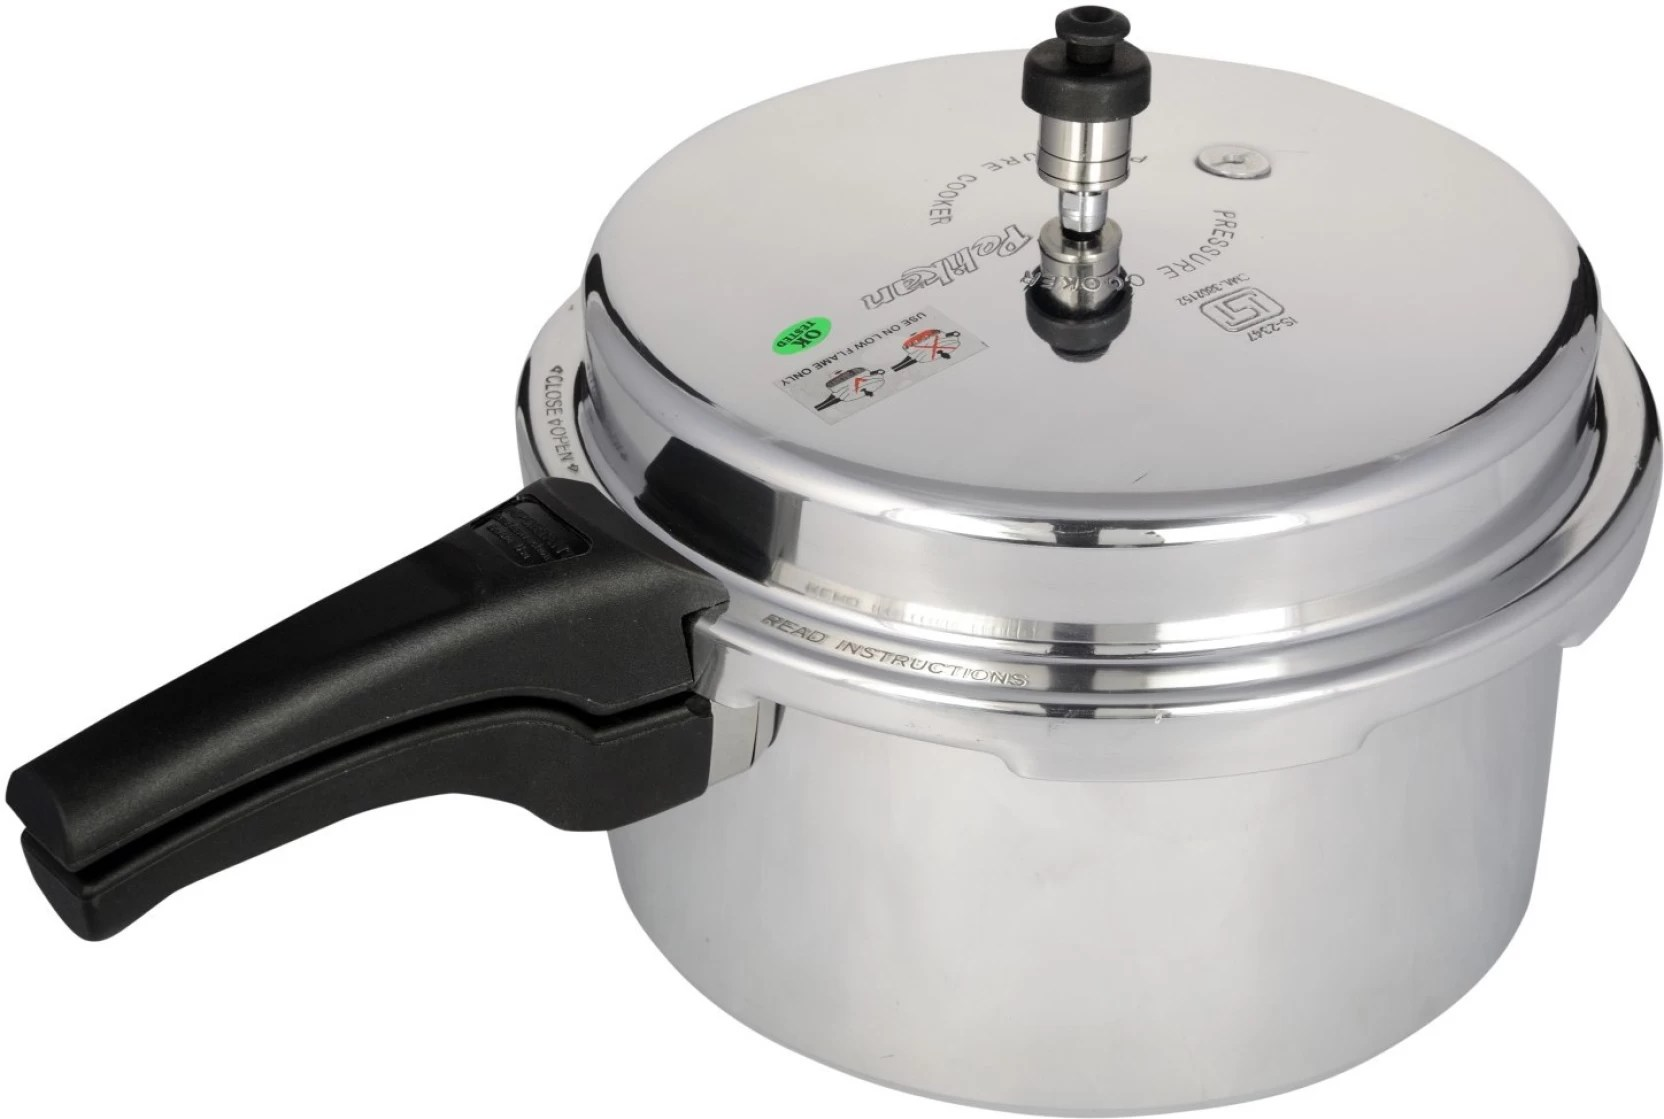 Big W Pressure Cooker Pelikan 7 5 Pressure Cooker Price In India Buy Pelikan 7 5